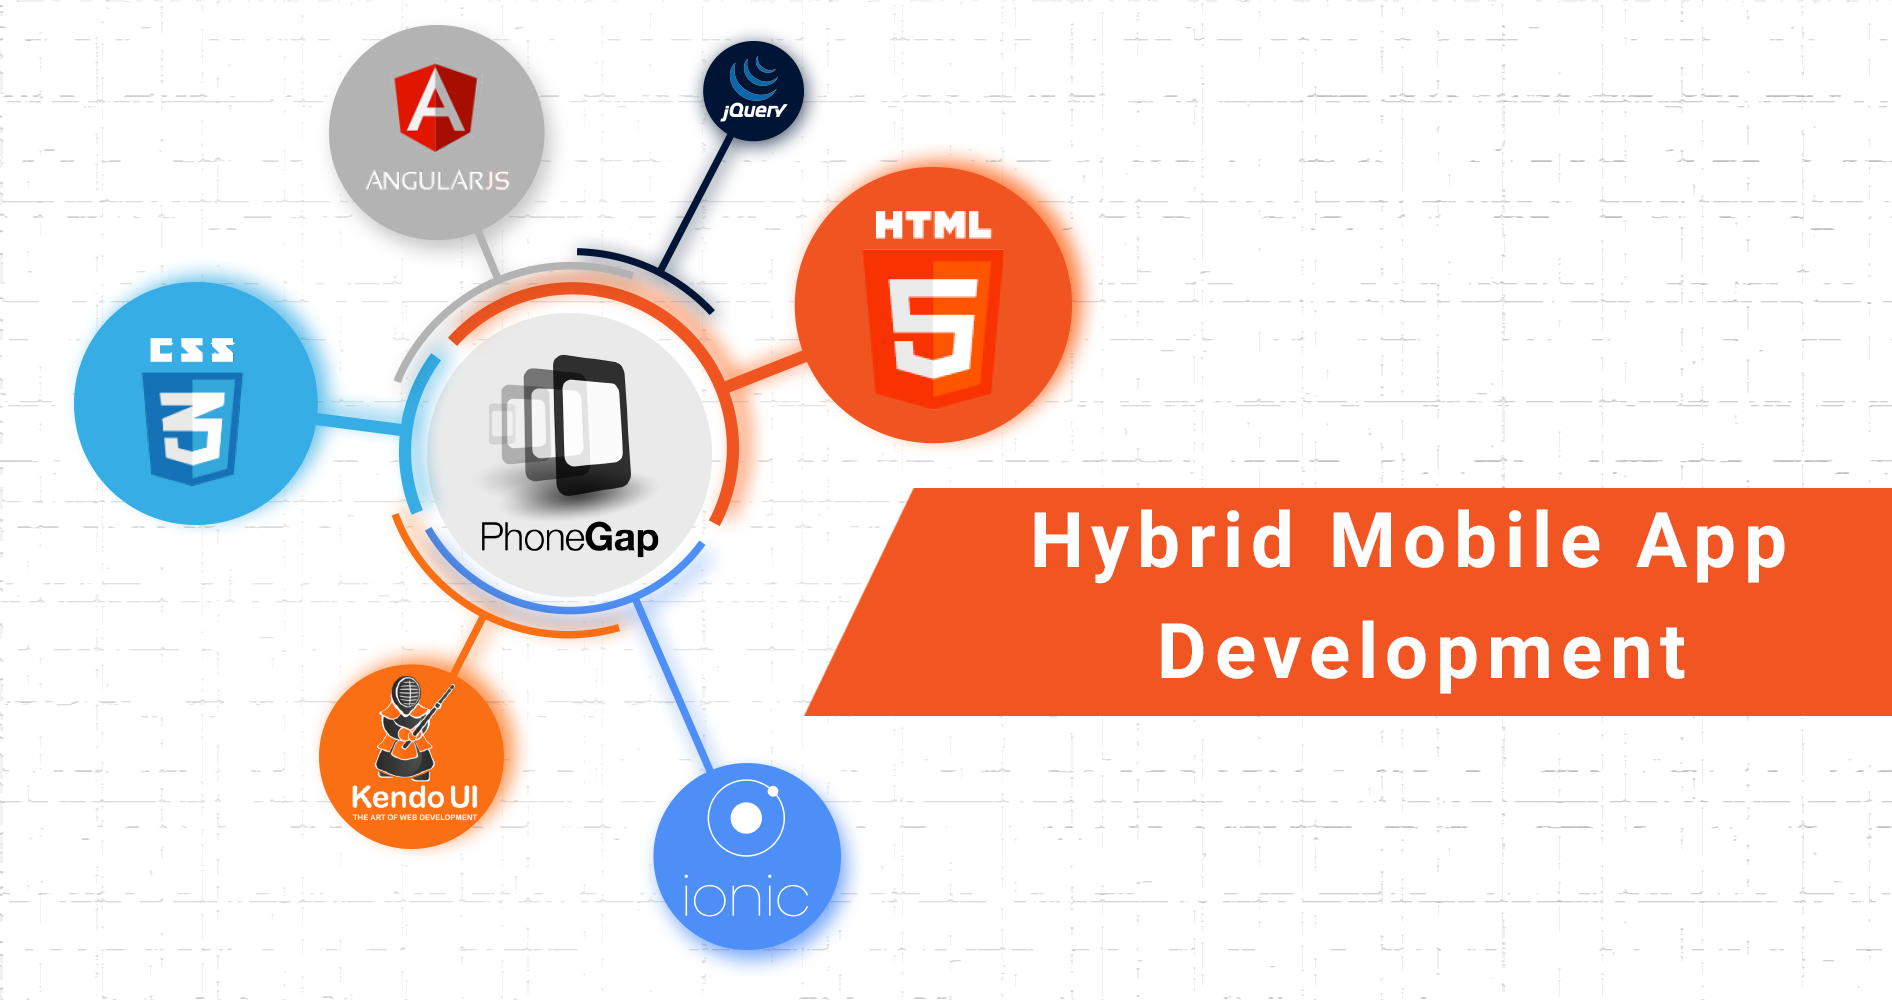 Hybrid Mobile app Development Frameworks for 2019